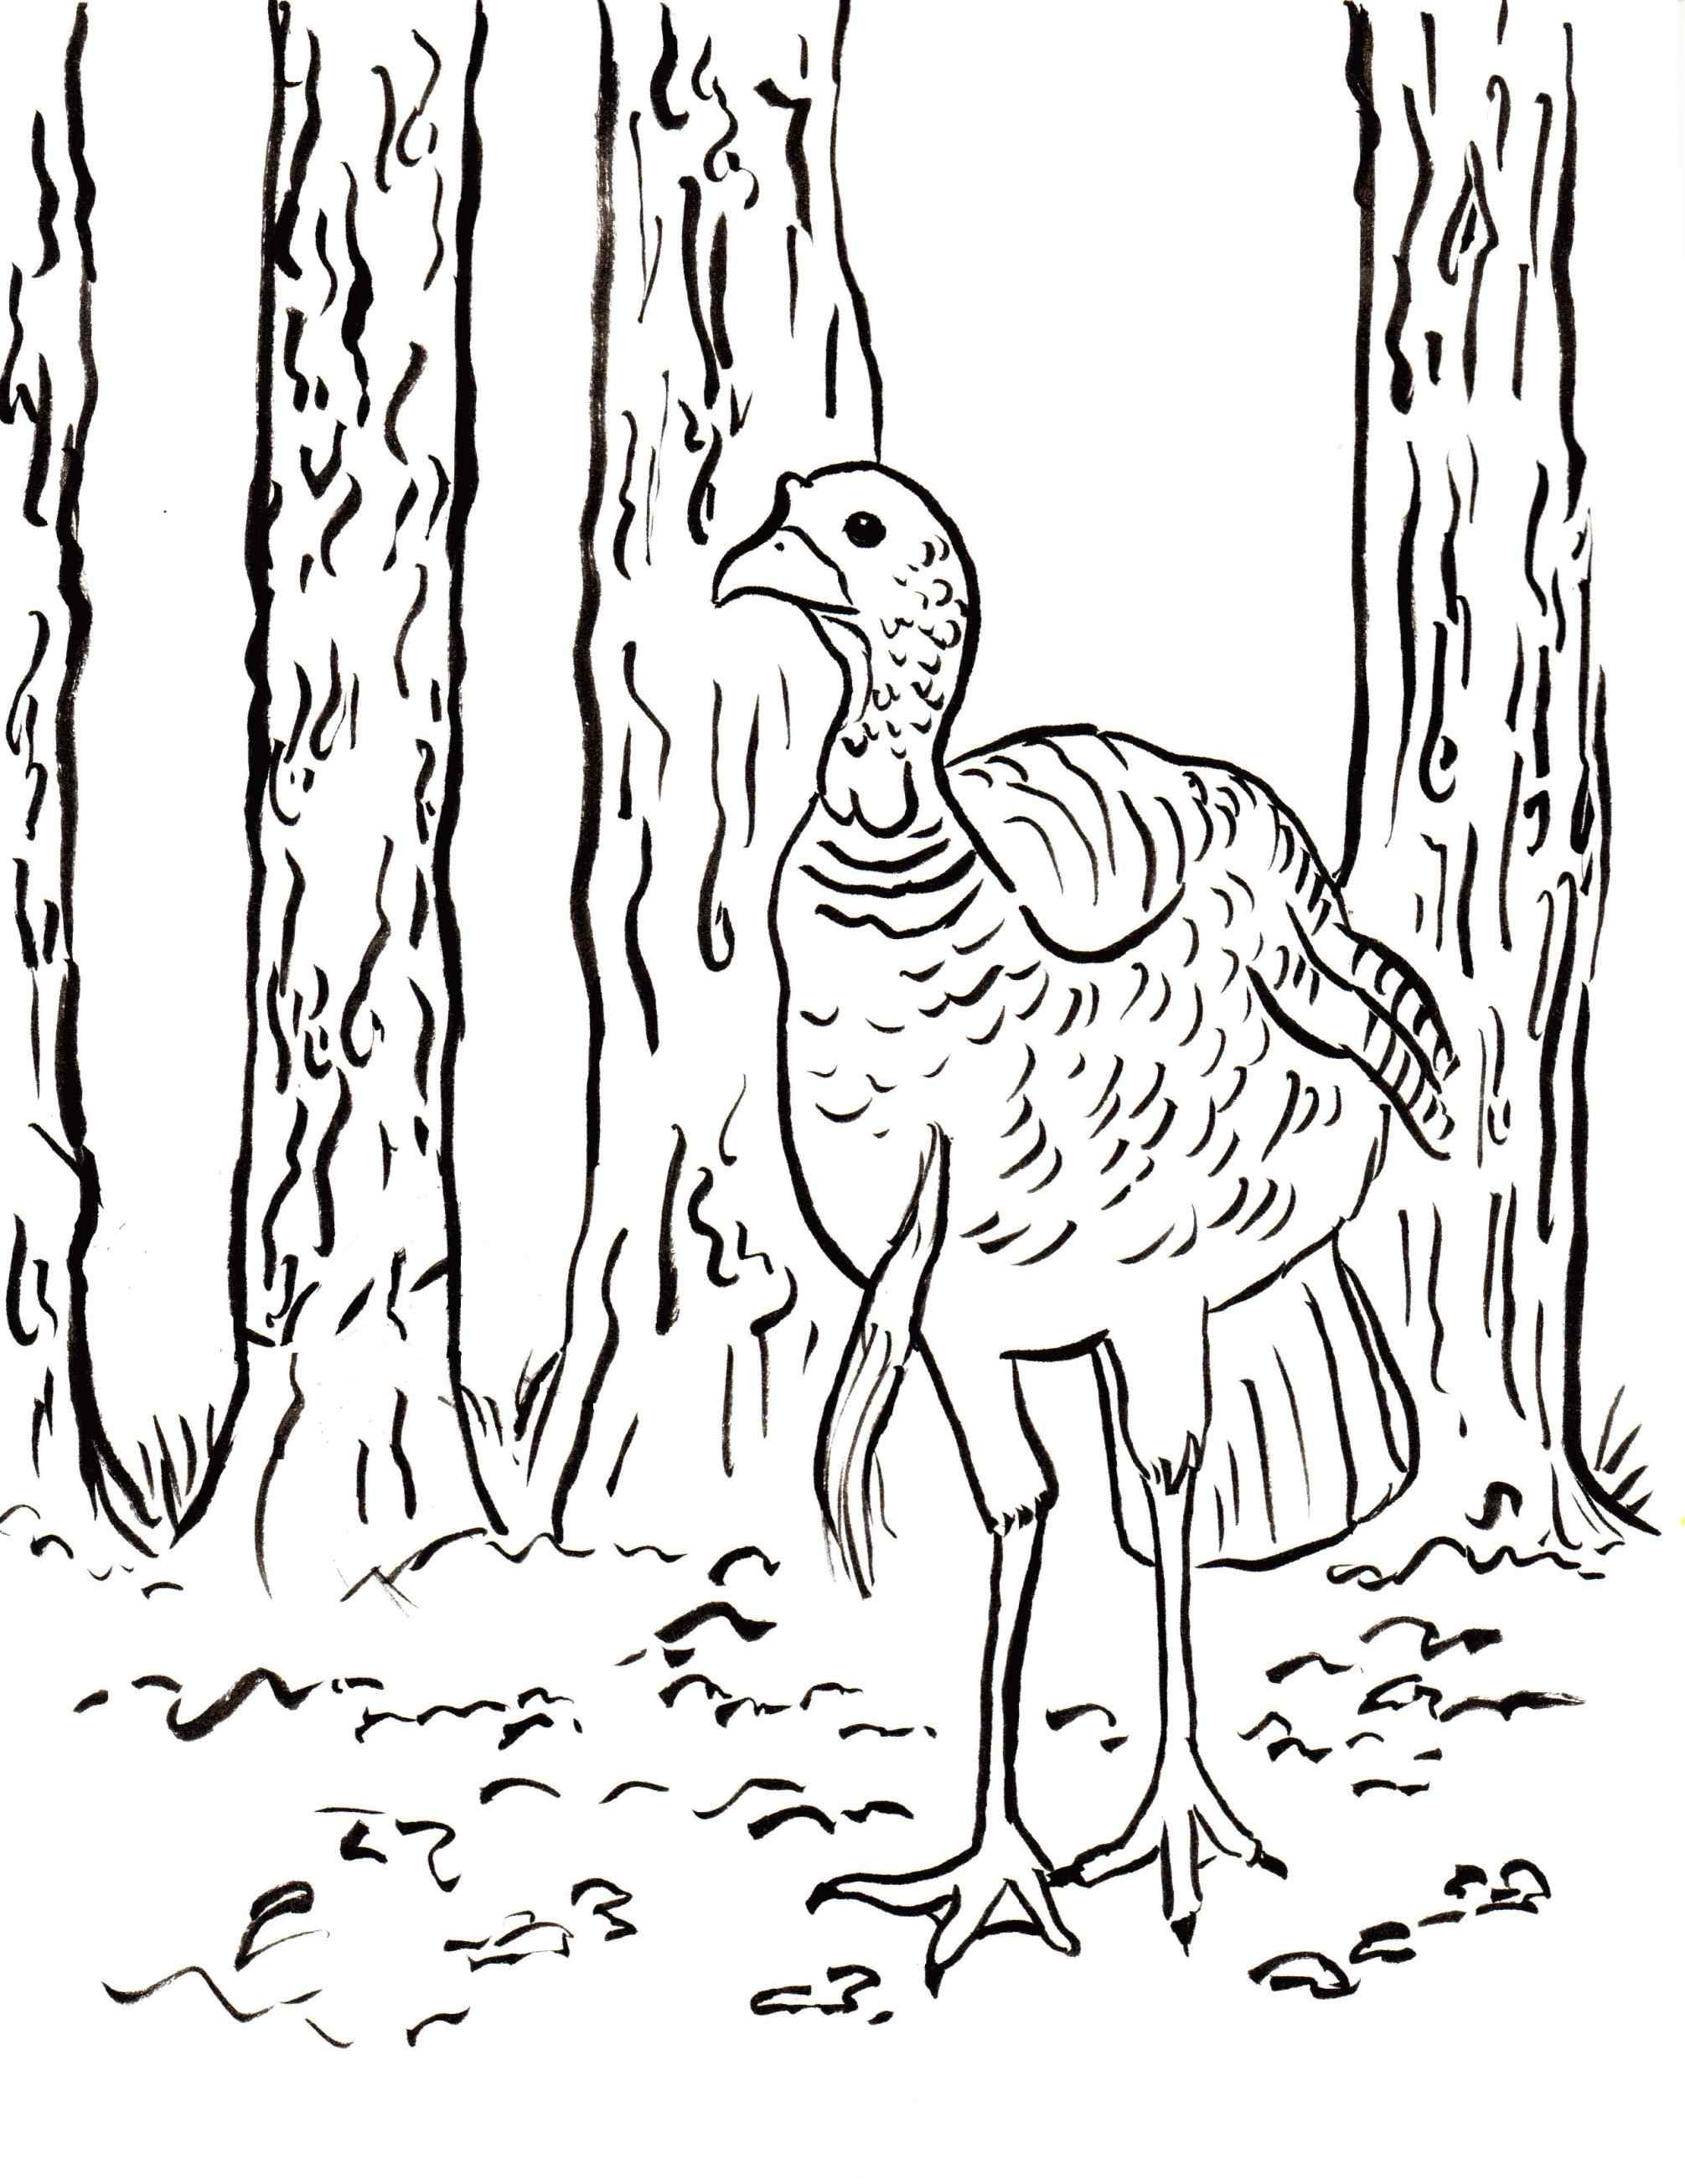 2011x2607 Turkey Hunting Coloring Pages Online Coloring Printable